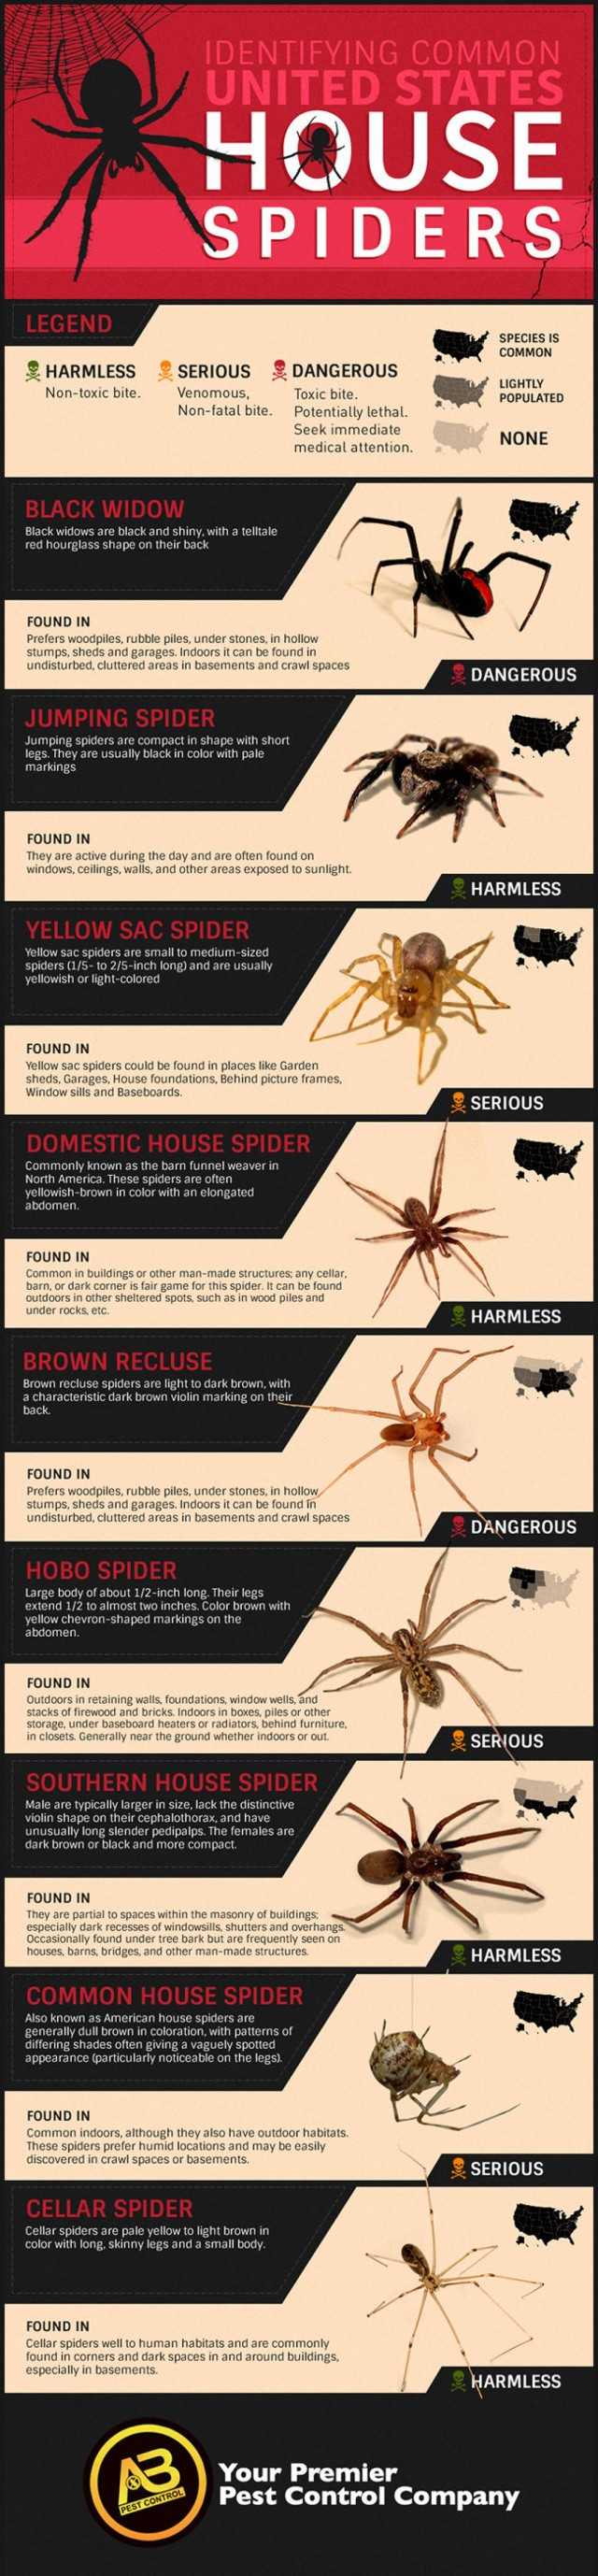 identifying-common-us-house-spiders_53273b84b3959_w1500